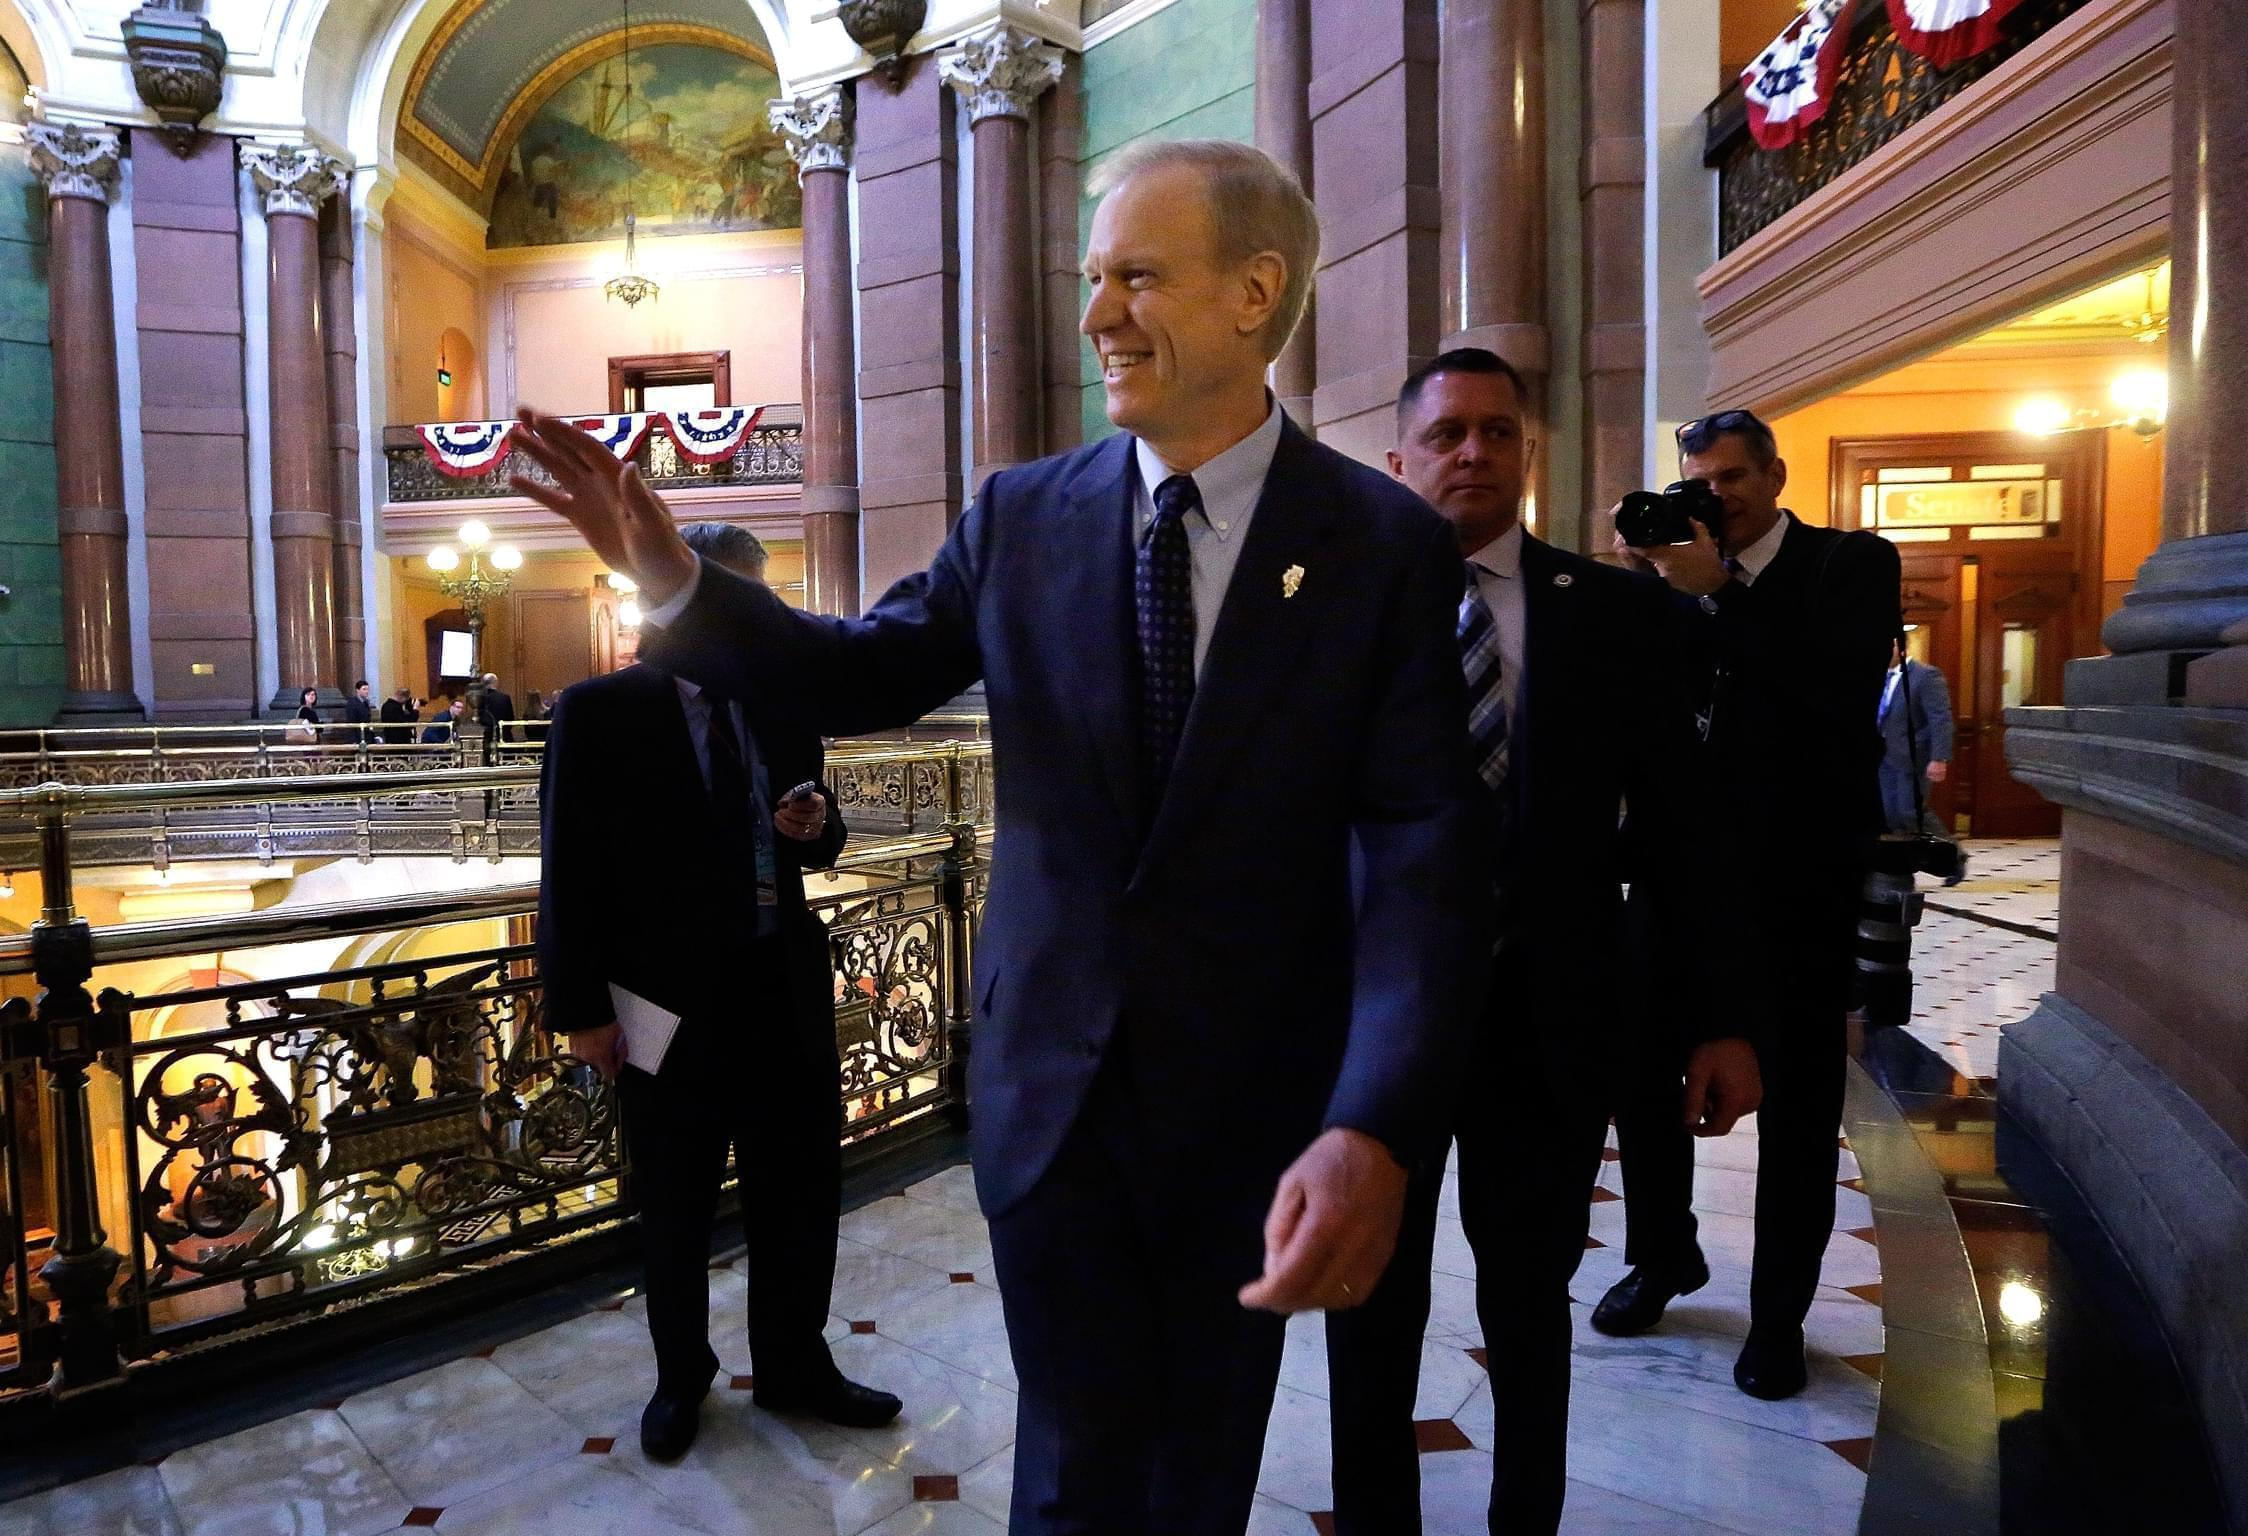 Illinois Governor Bruce Rauner after swearing in ceremonies in the Senate chambers Wednesday.